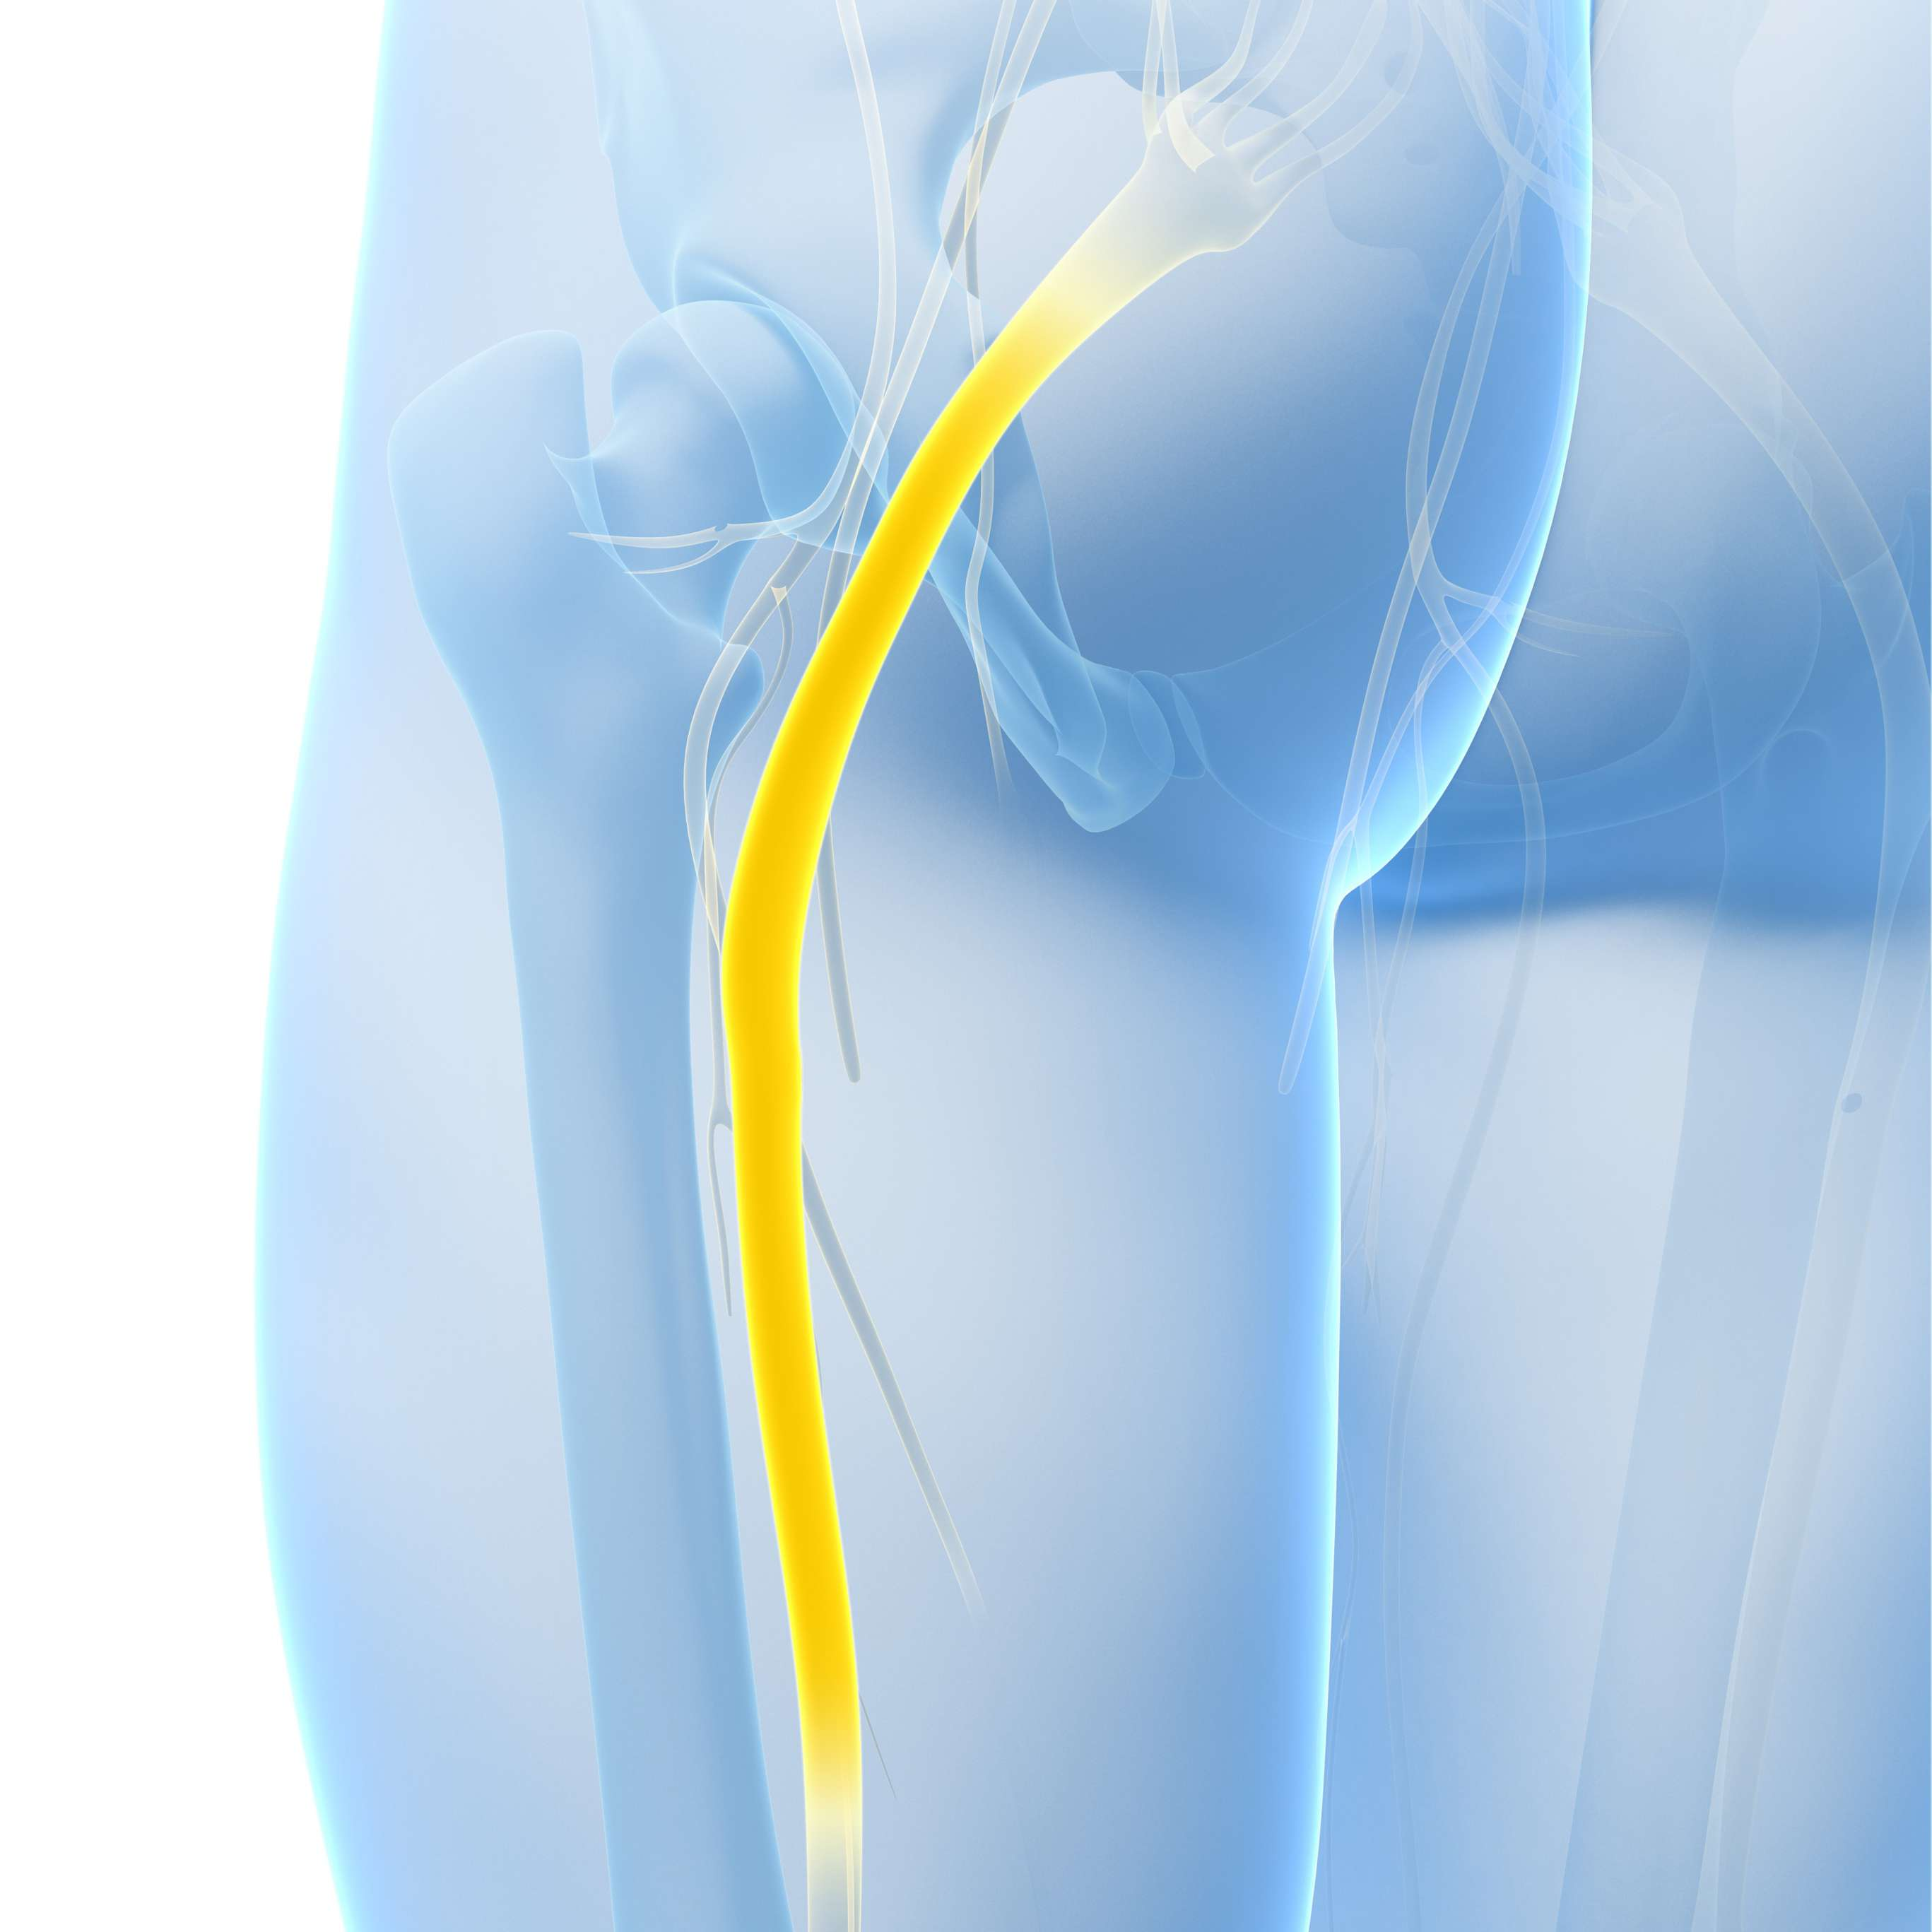 3 Exercises That May Irritate Your Sciatic Nerve